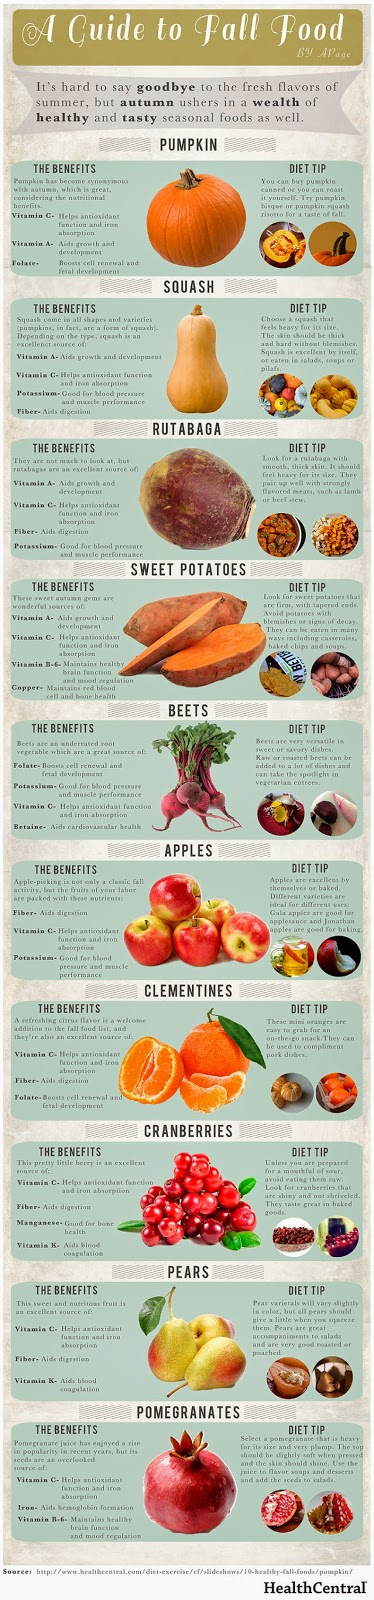 Essential health solutions october 2014 for Fall cooking tips